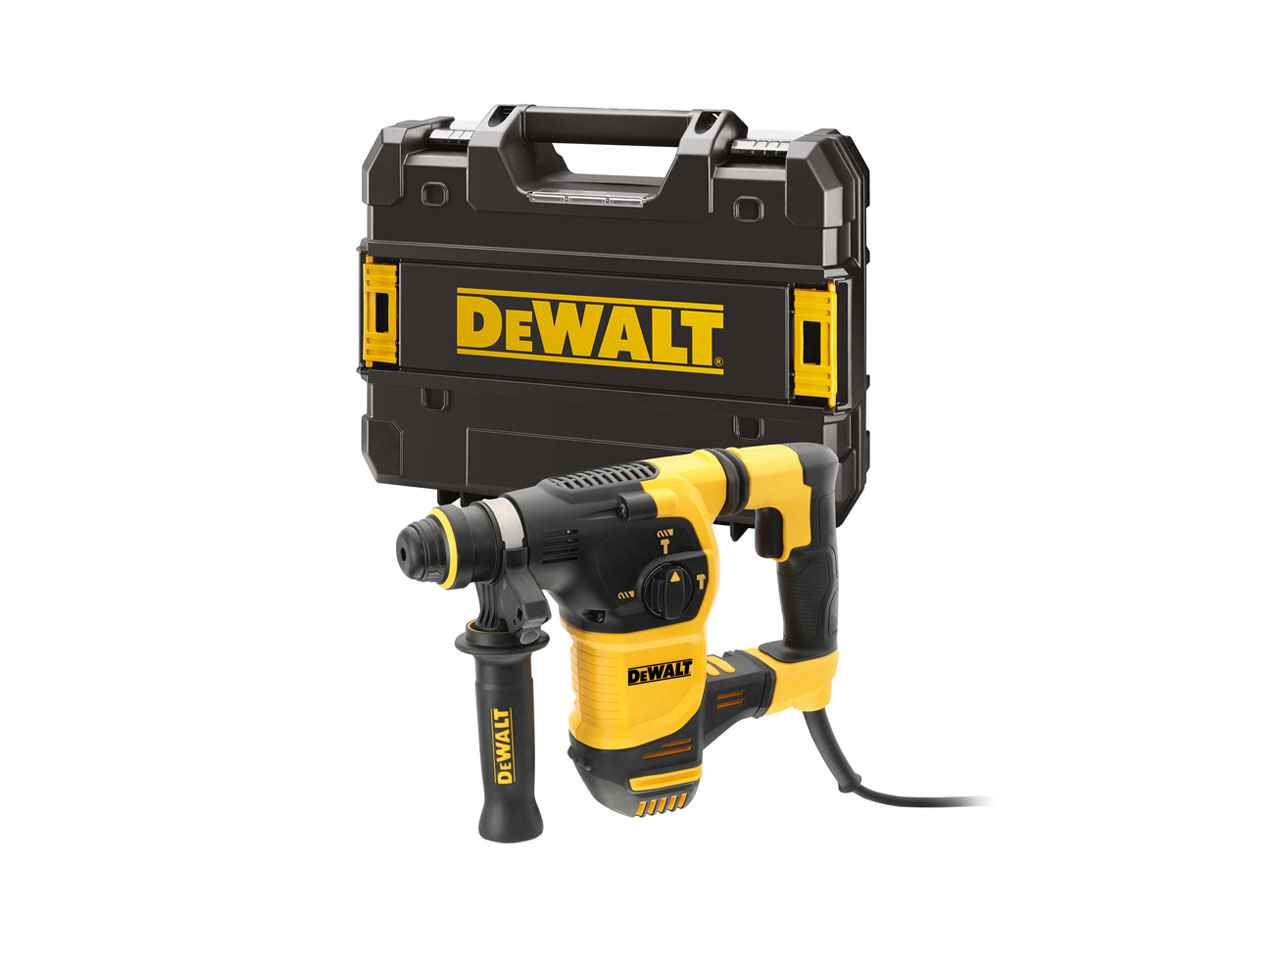 dewalt d25333k gb 240v 950w 30mm brushless sds plus rotary. Black Bedroom Furniture Sets. Home Design Ideas